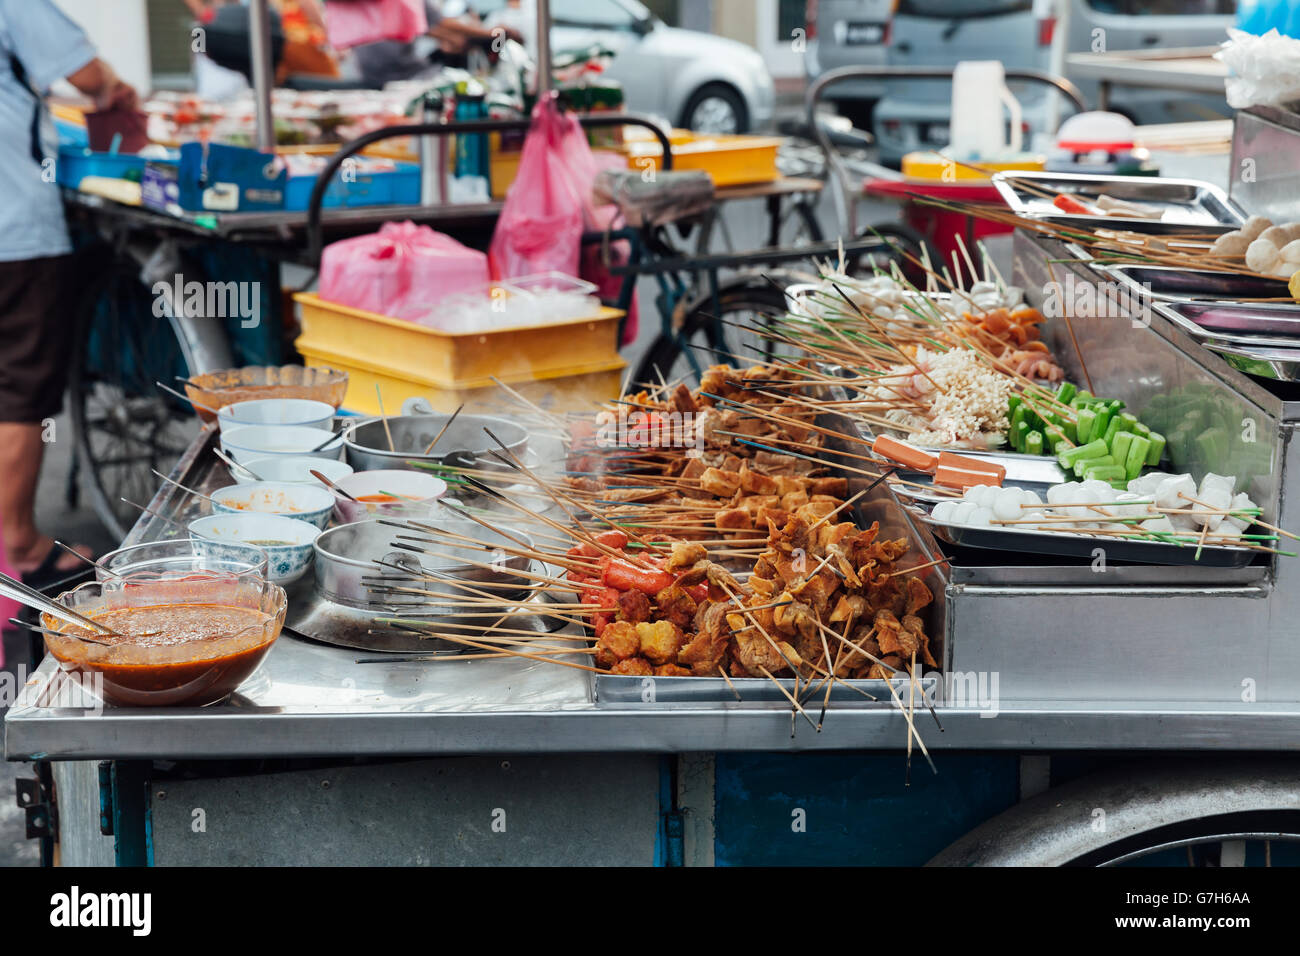 Lok-Lok steamboat stall at the Kimberly Street Food Market, George Town, Penang, Malaysia. - Stock Image